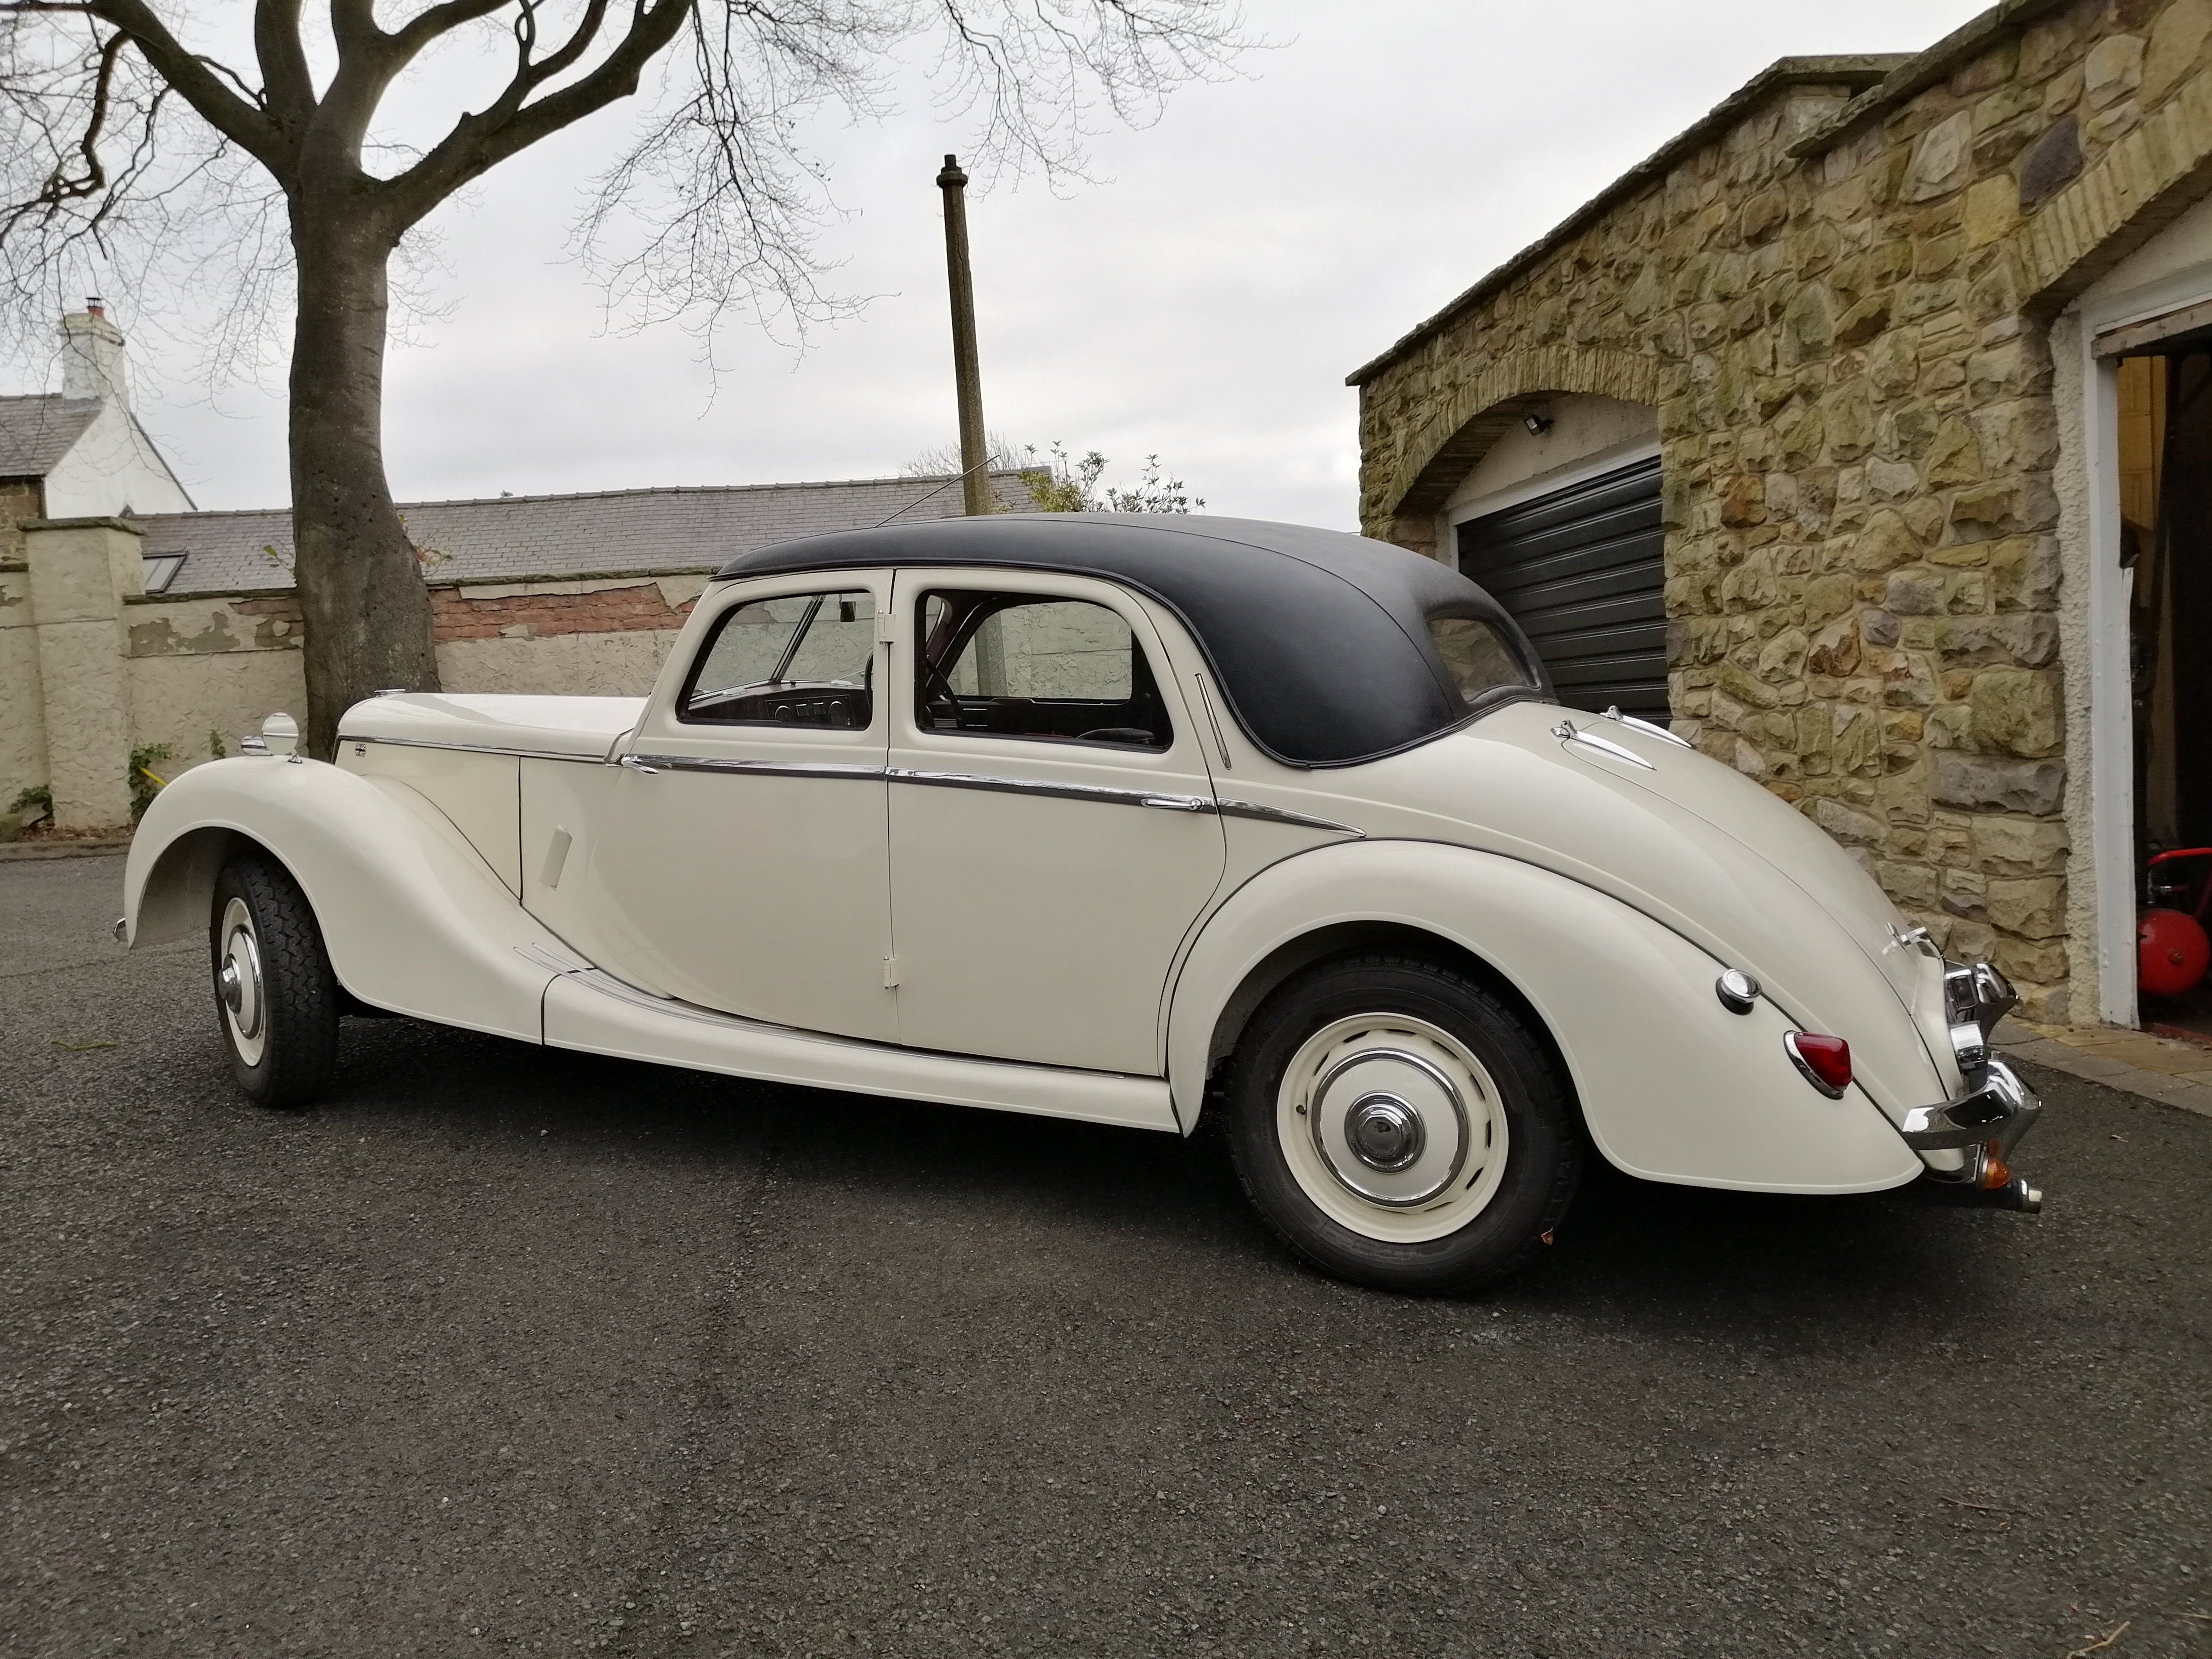 1949 Riley classic full restoration For Sale (picture 4 of 5)